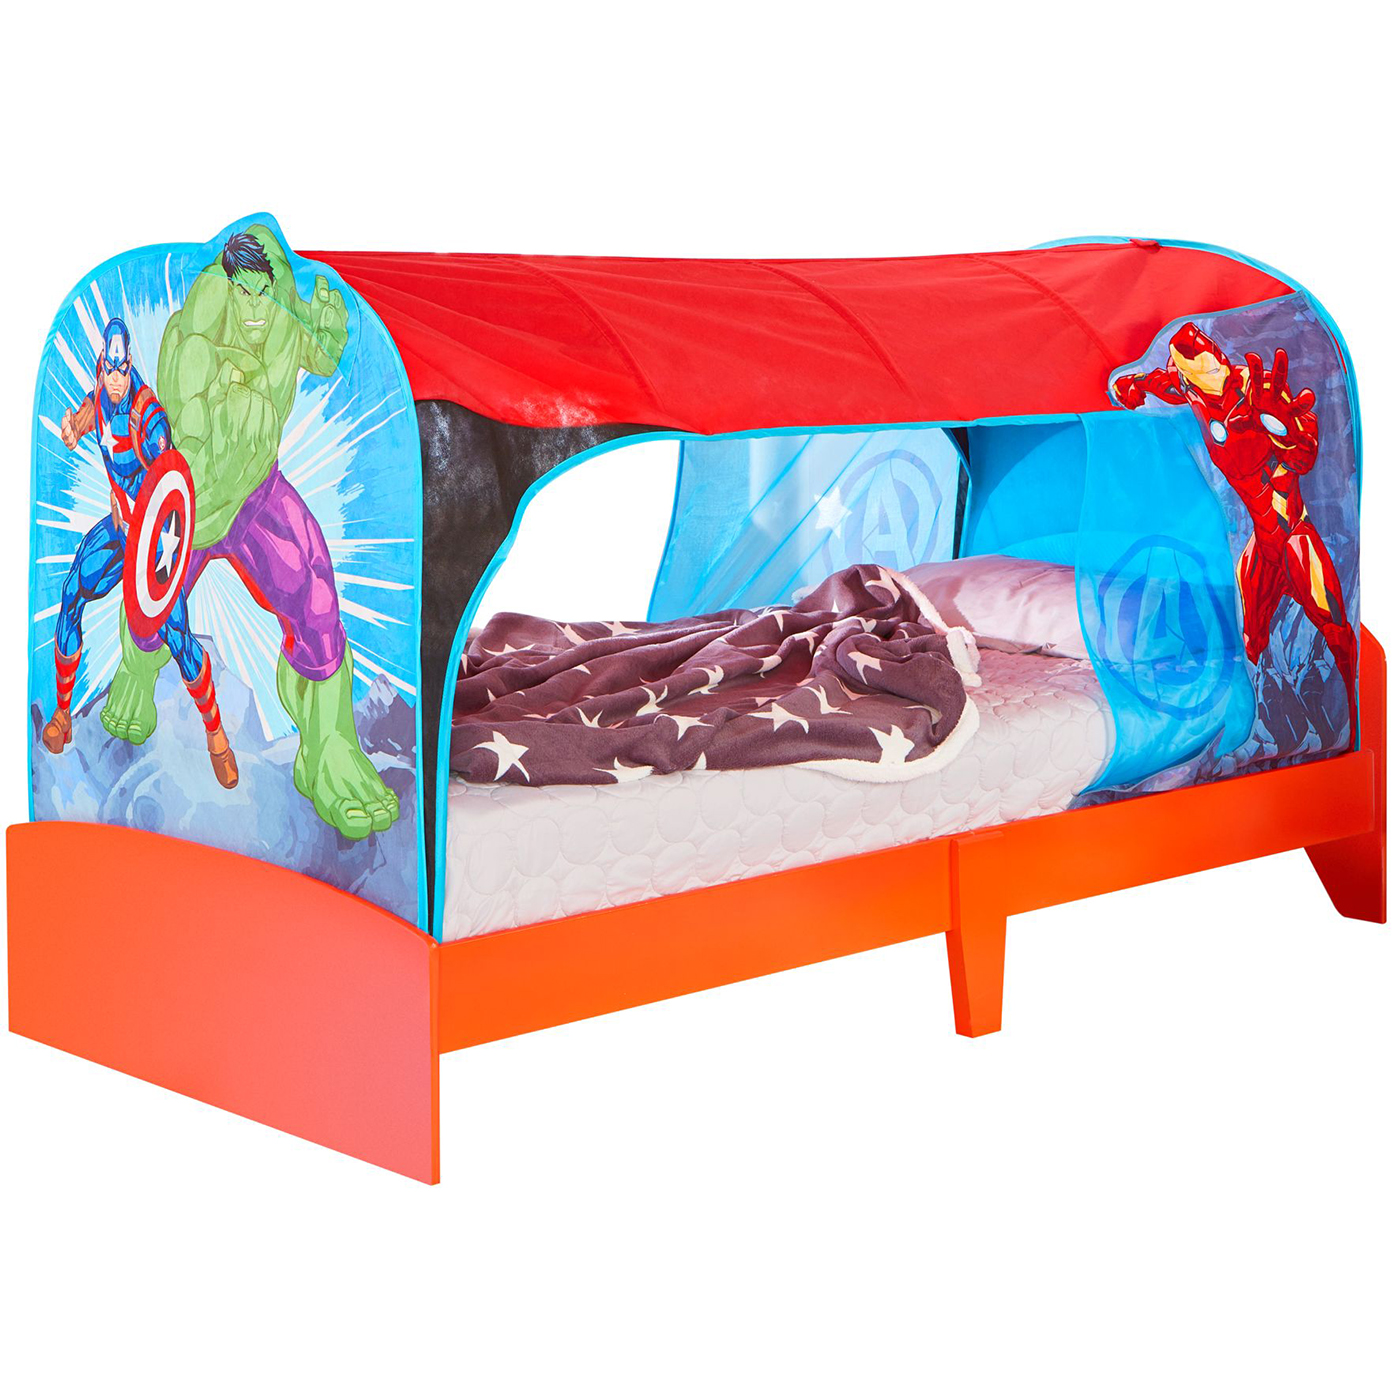 Marvel Avengers Over Bed Tent Den Moose Toys